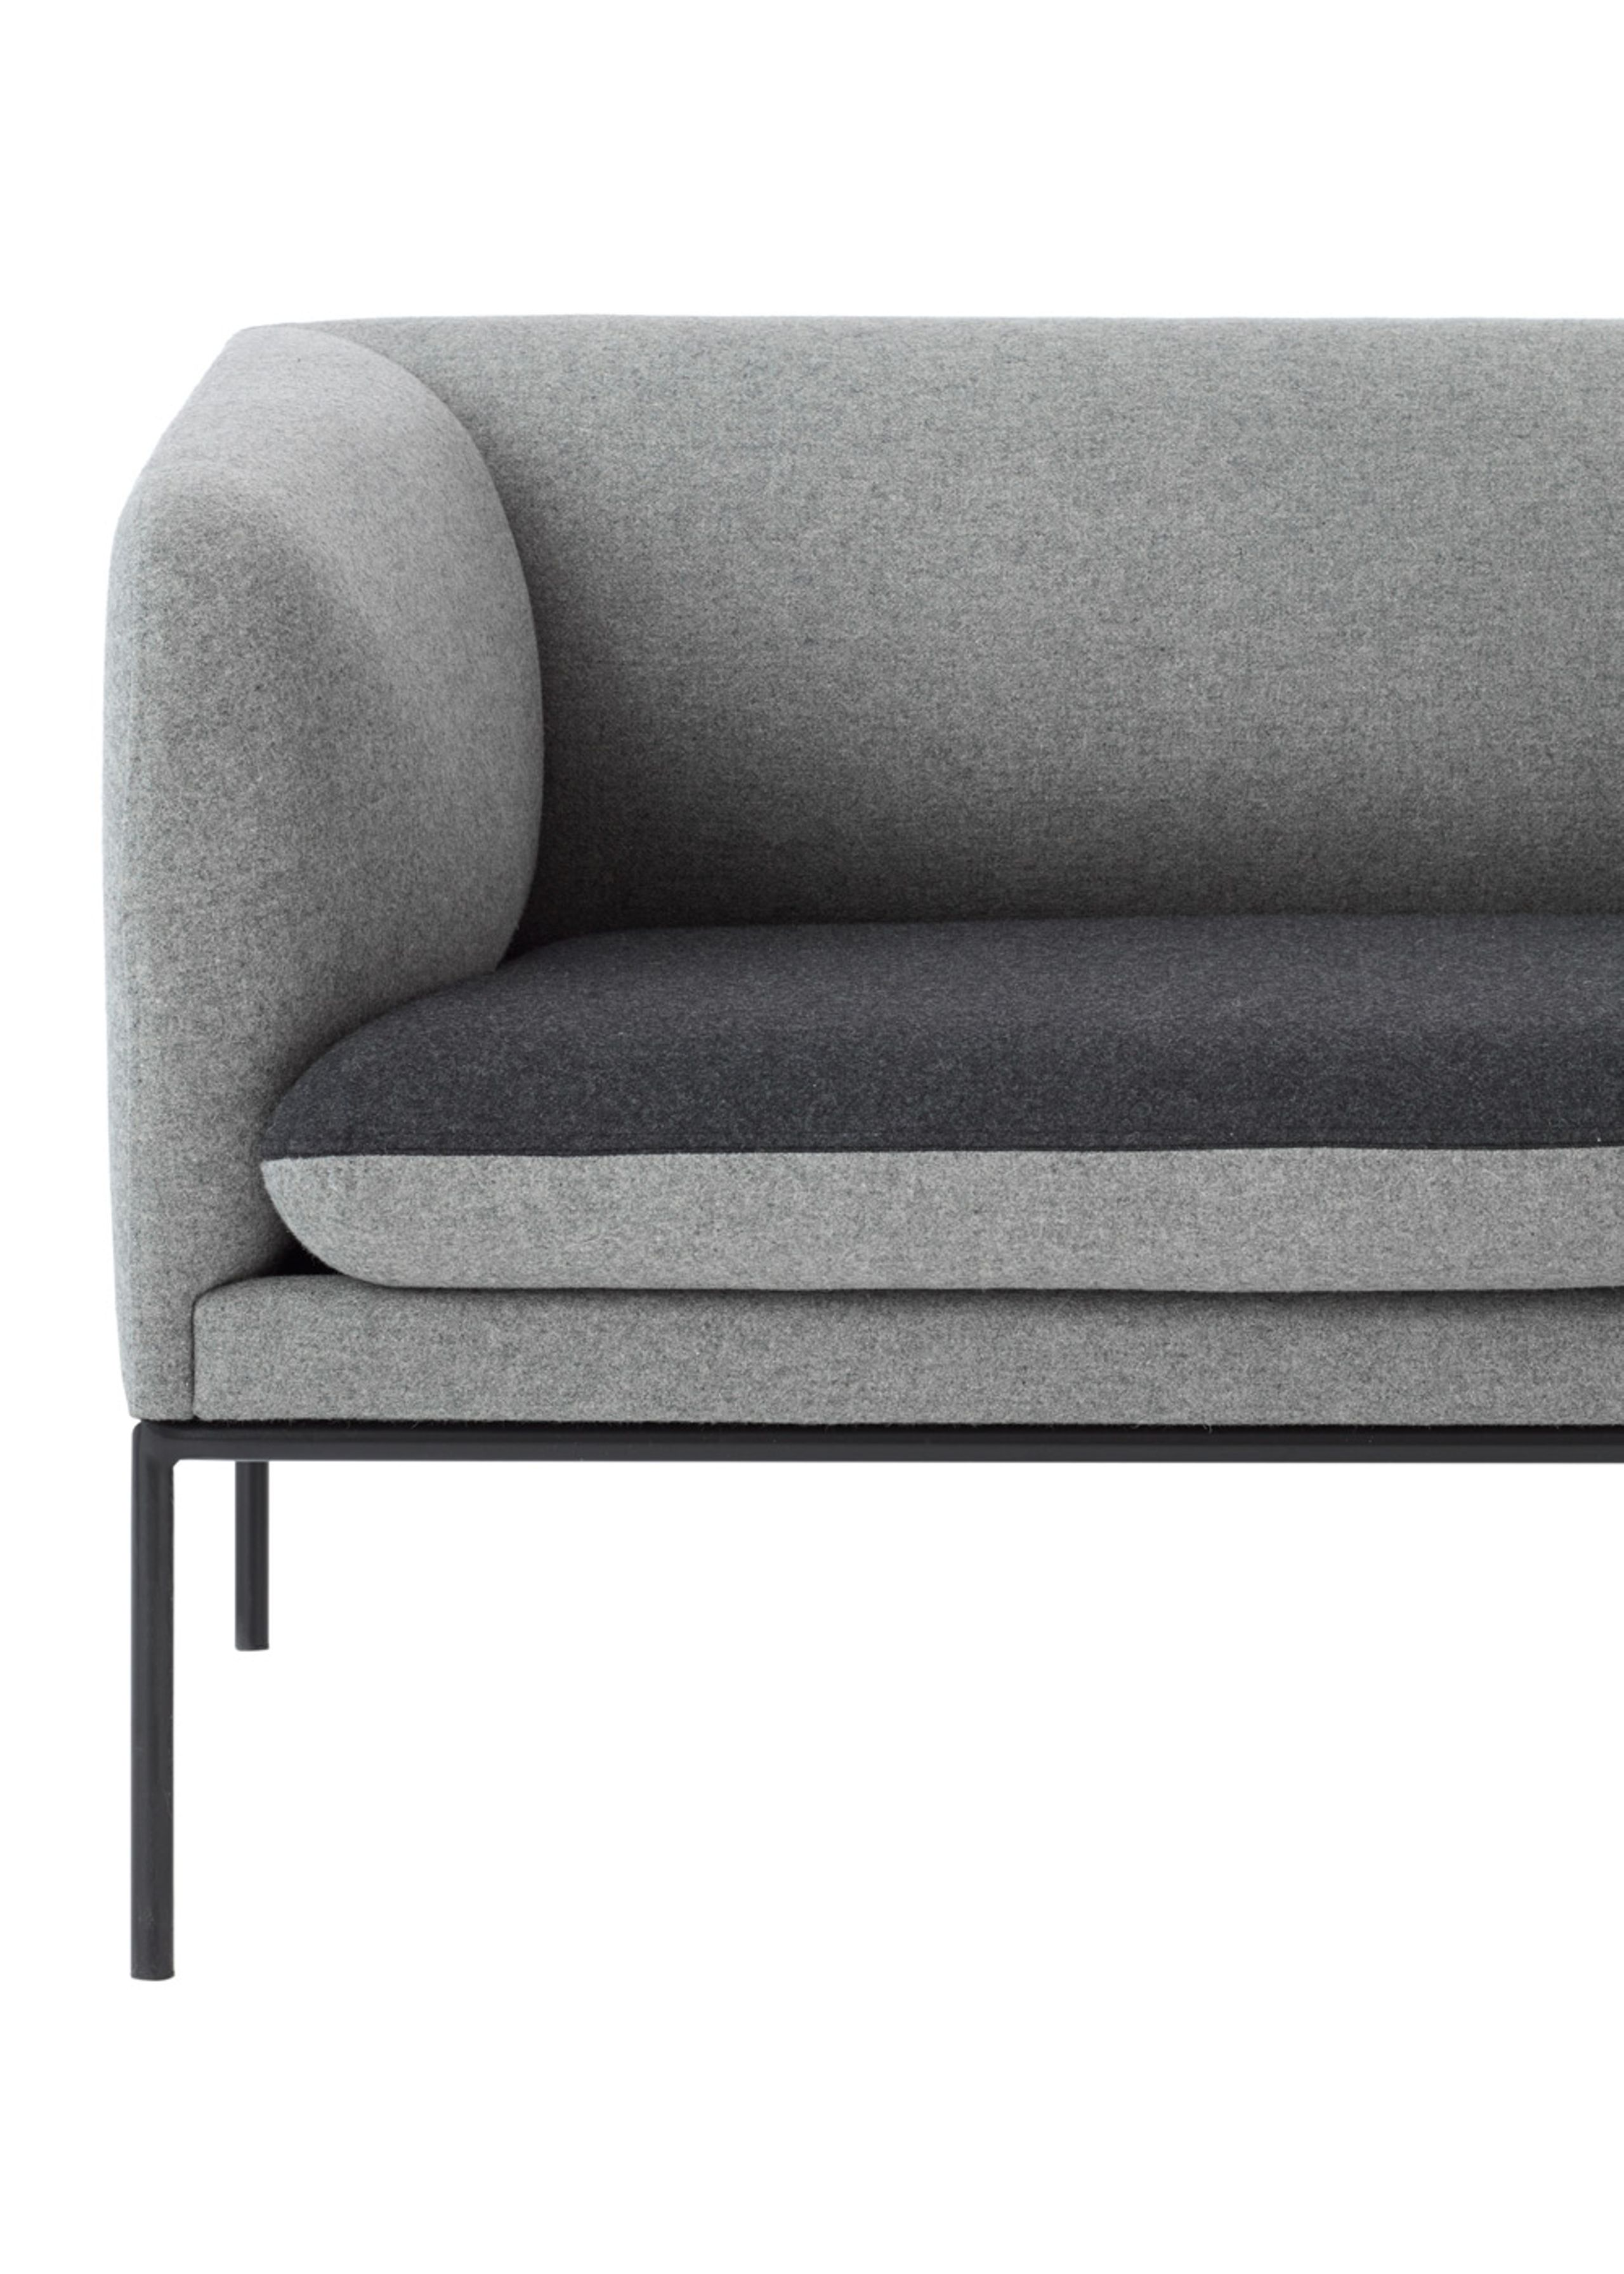 Fabulous Cheap Cheap Ferm Living Couch Turn Sofa Wool Mix Light Grey W Dark  With Couch Uform With Couch Uform With Kchenmbel Mae With Mae Kchenmbel